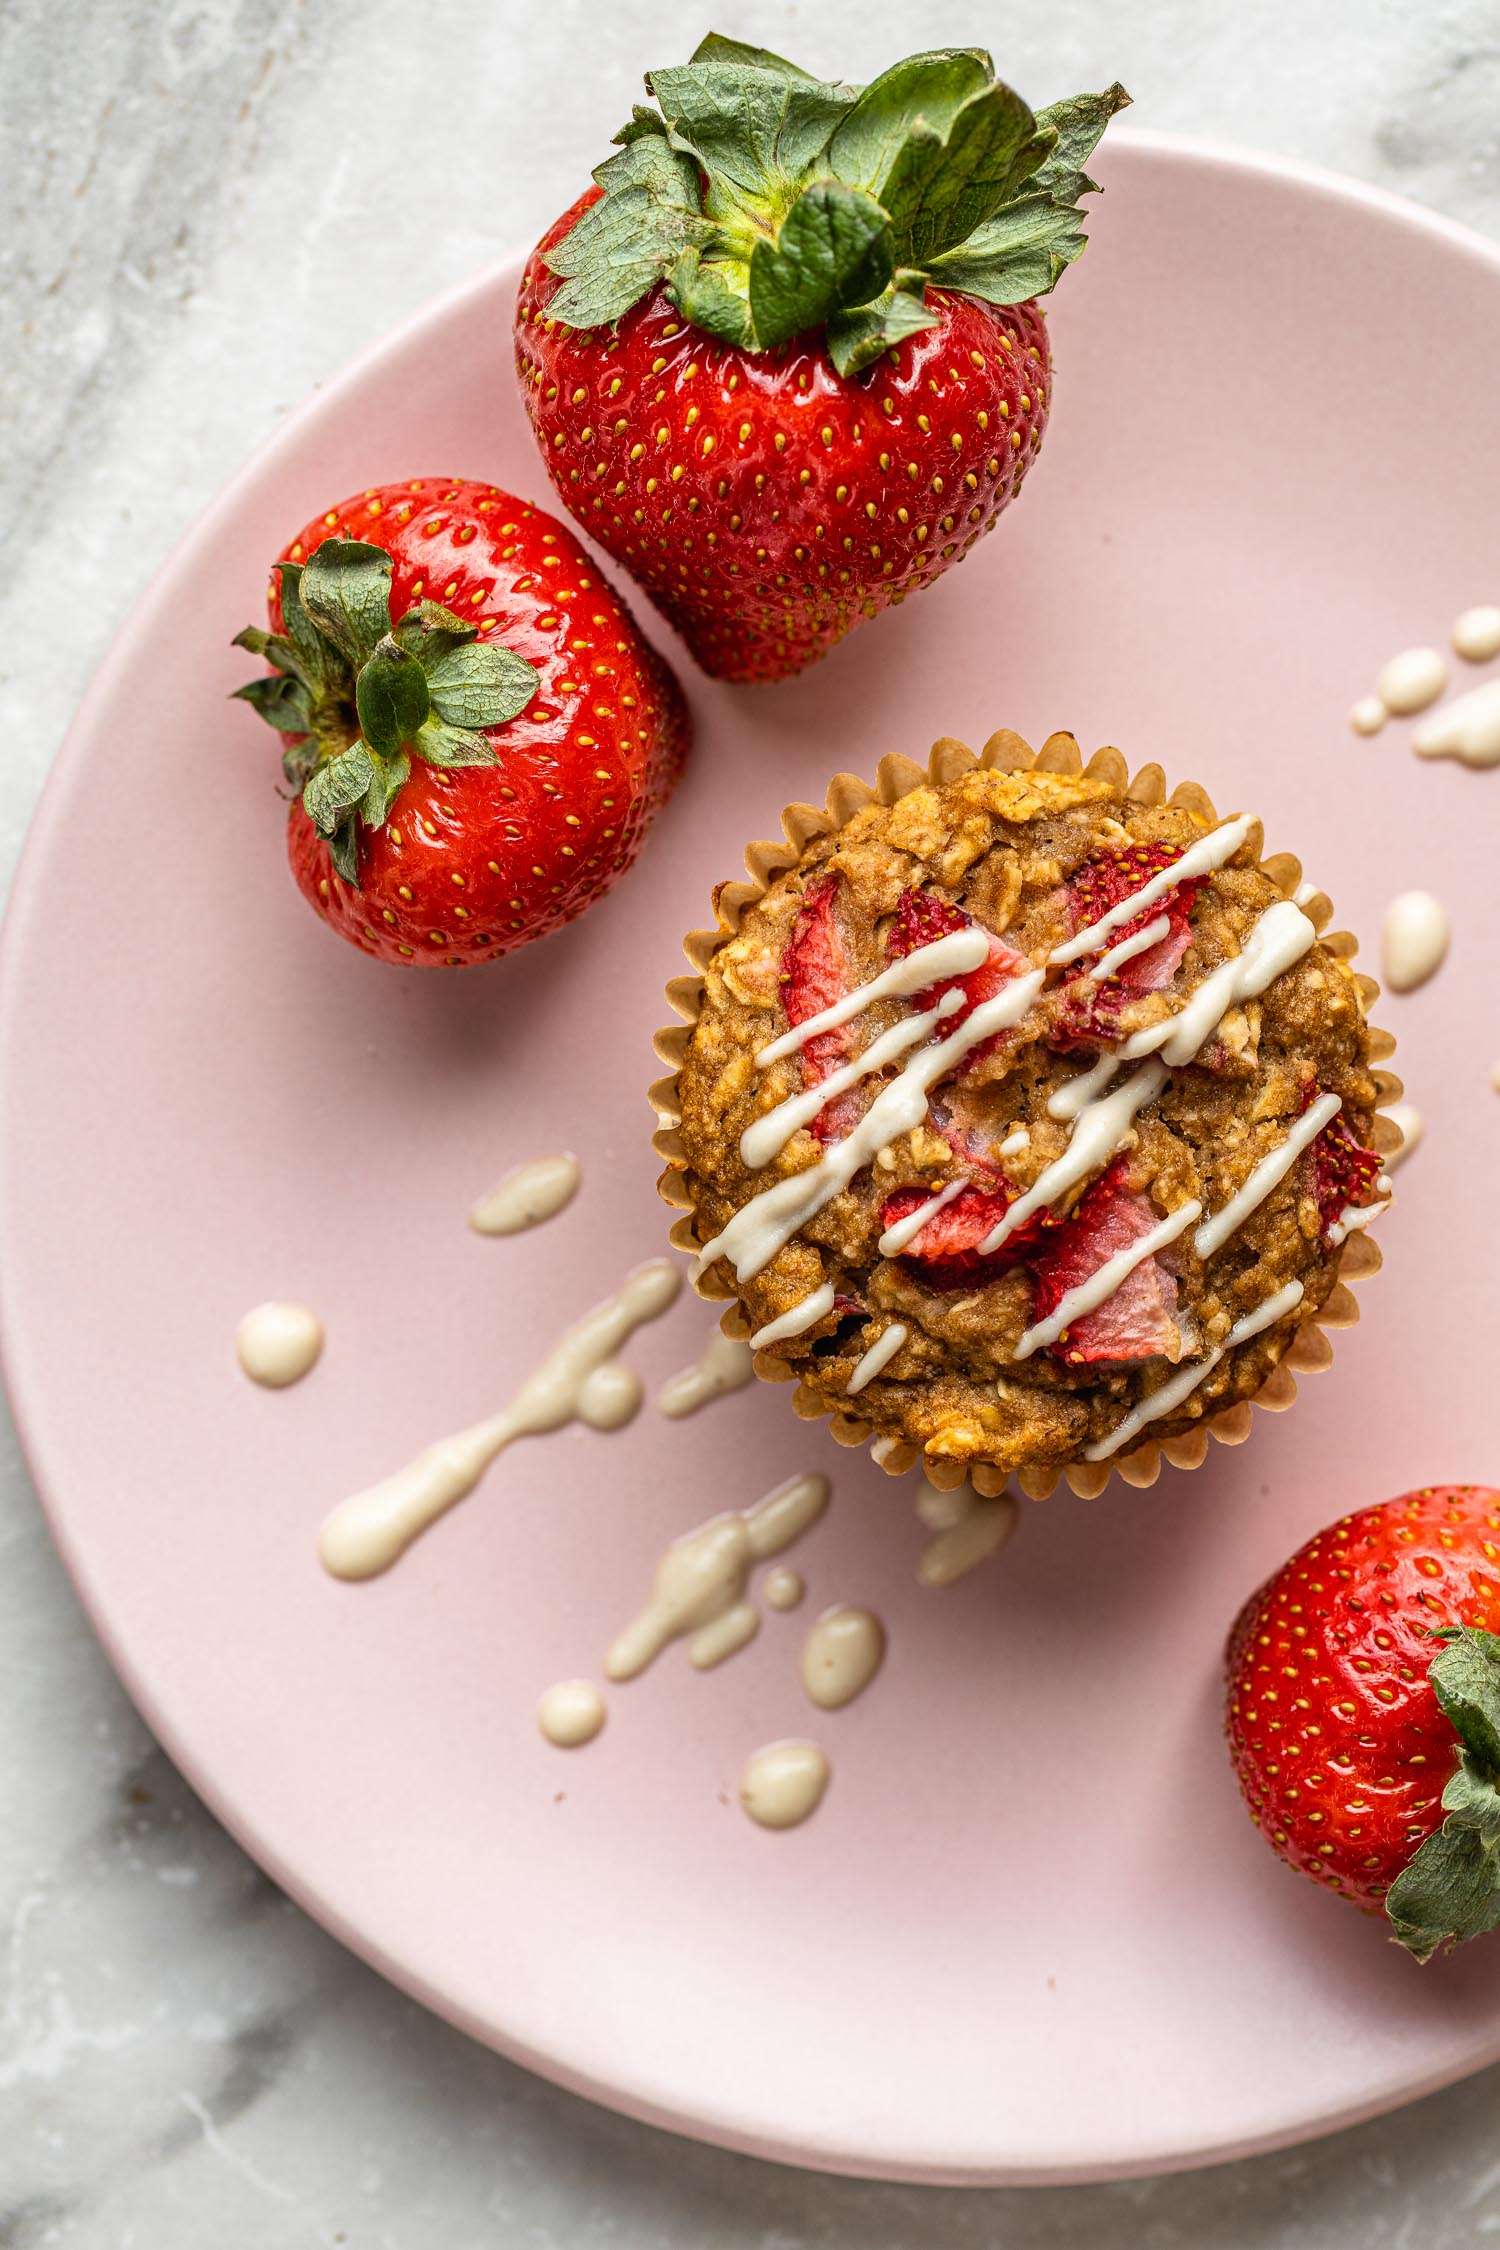 a pink dessert plate holds a healthy strawberry banana muffin drizzled in a dairy free cashew cream glaze surrounded by three whole strawberries